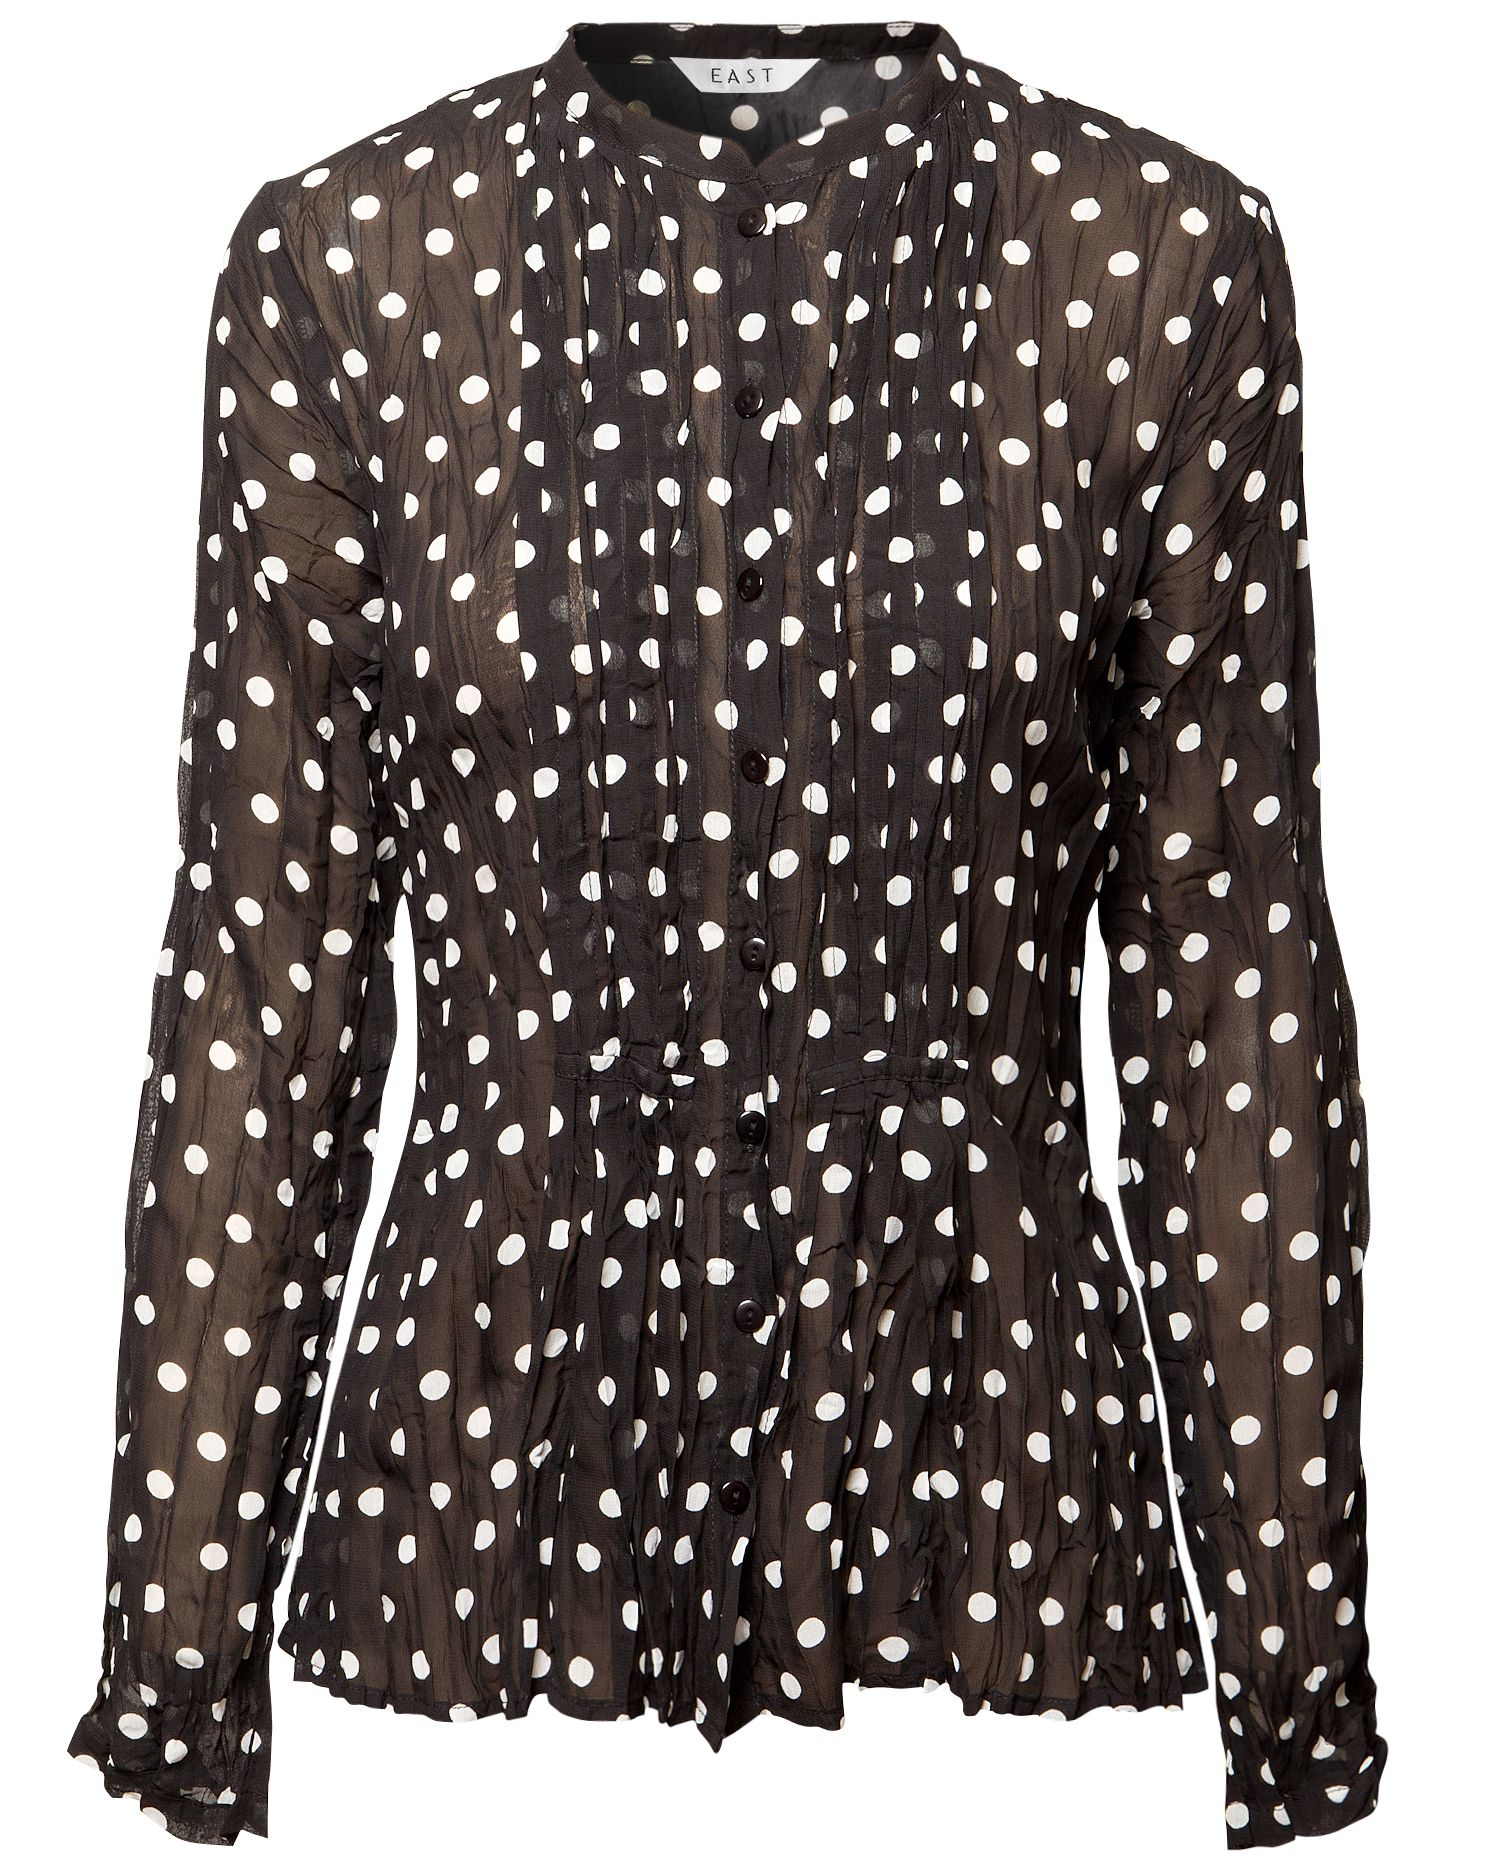 East Womens East Lara spot blouse, Black 161599479 product image